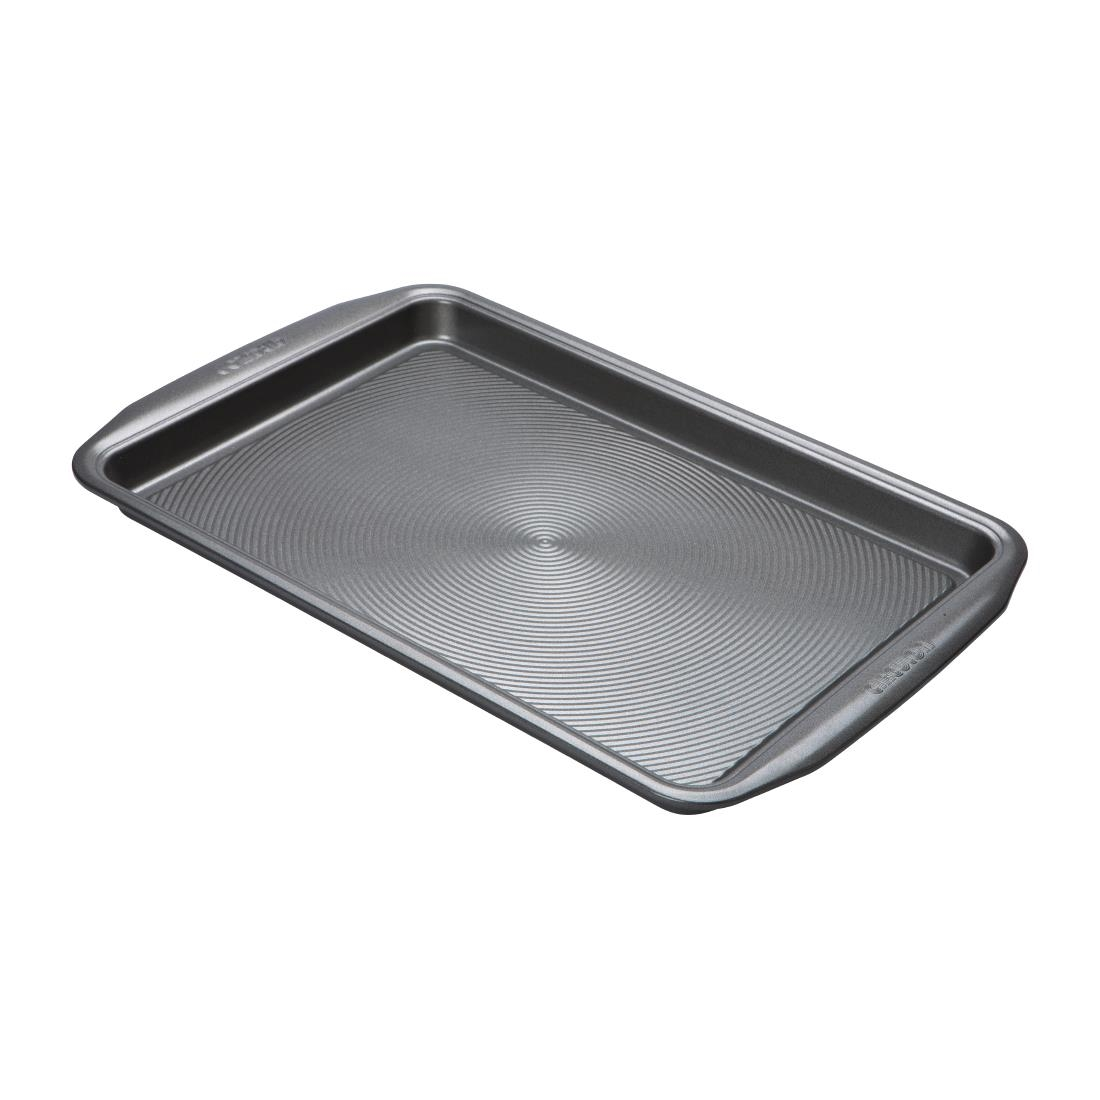 Image of Circulon Large Oven Tray 445mm